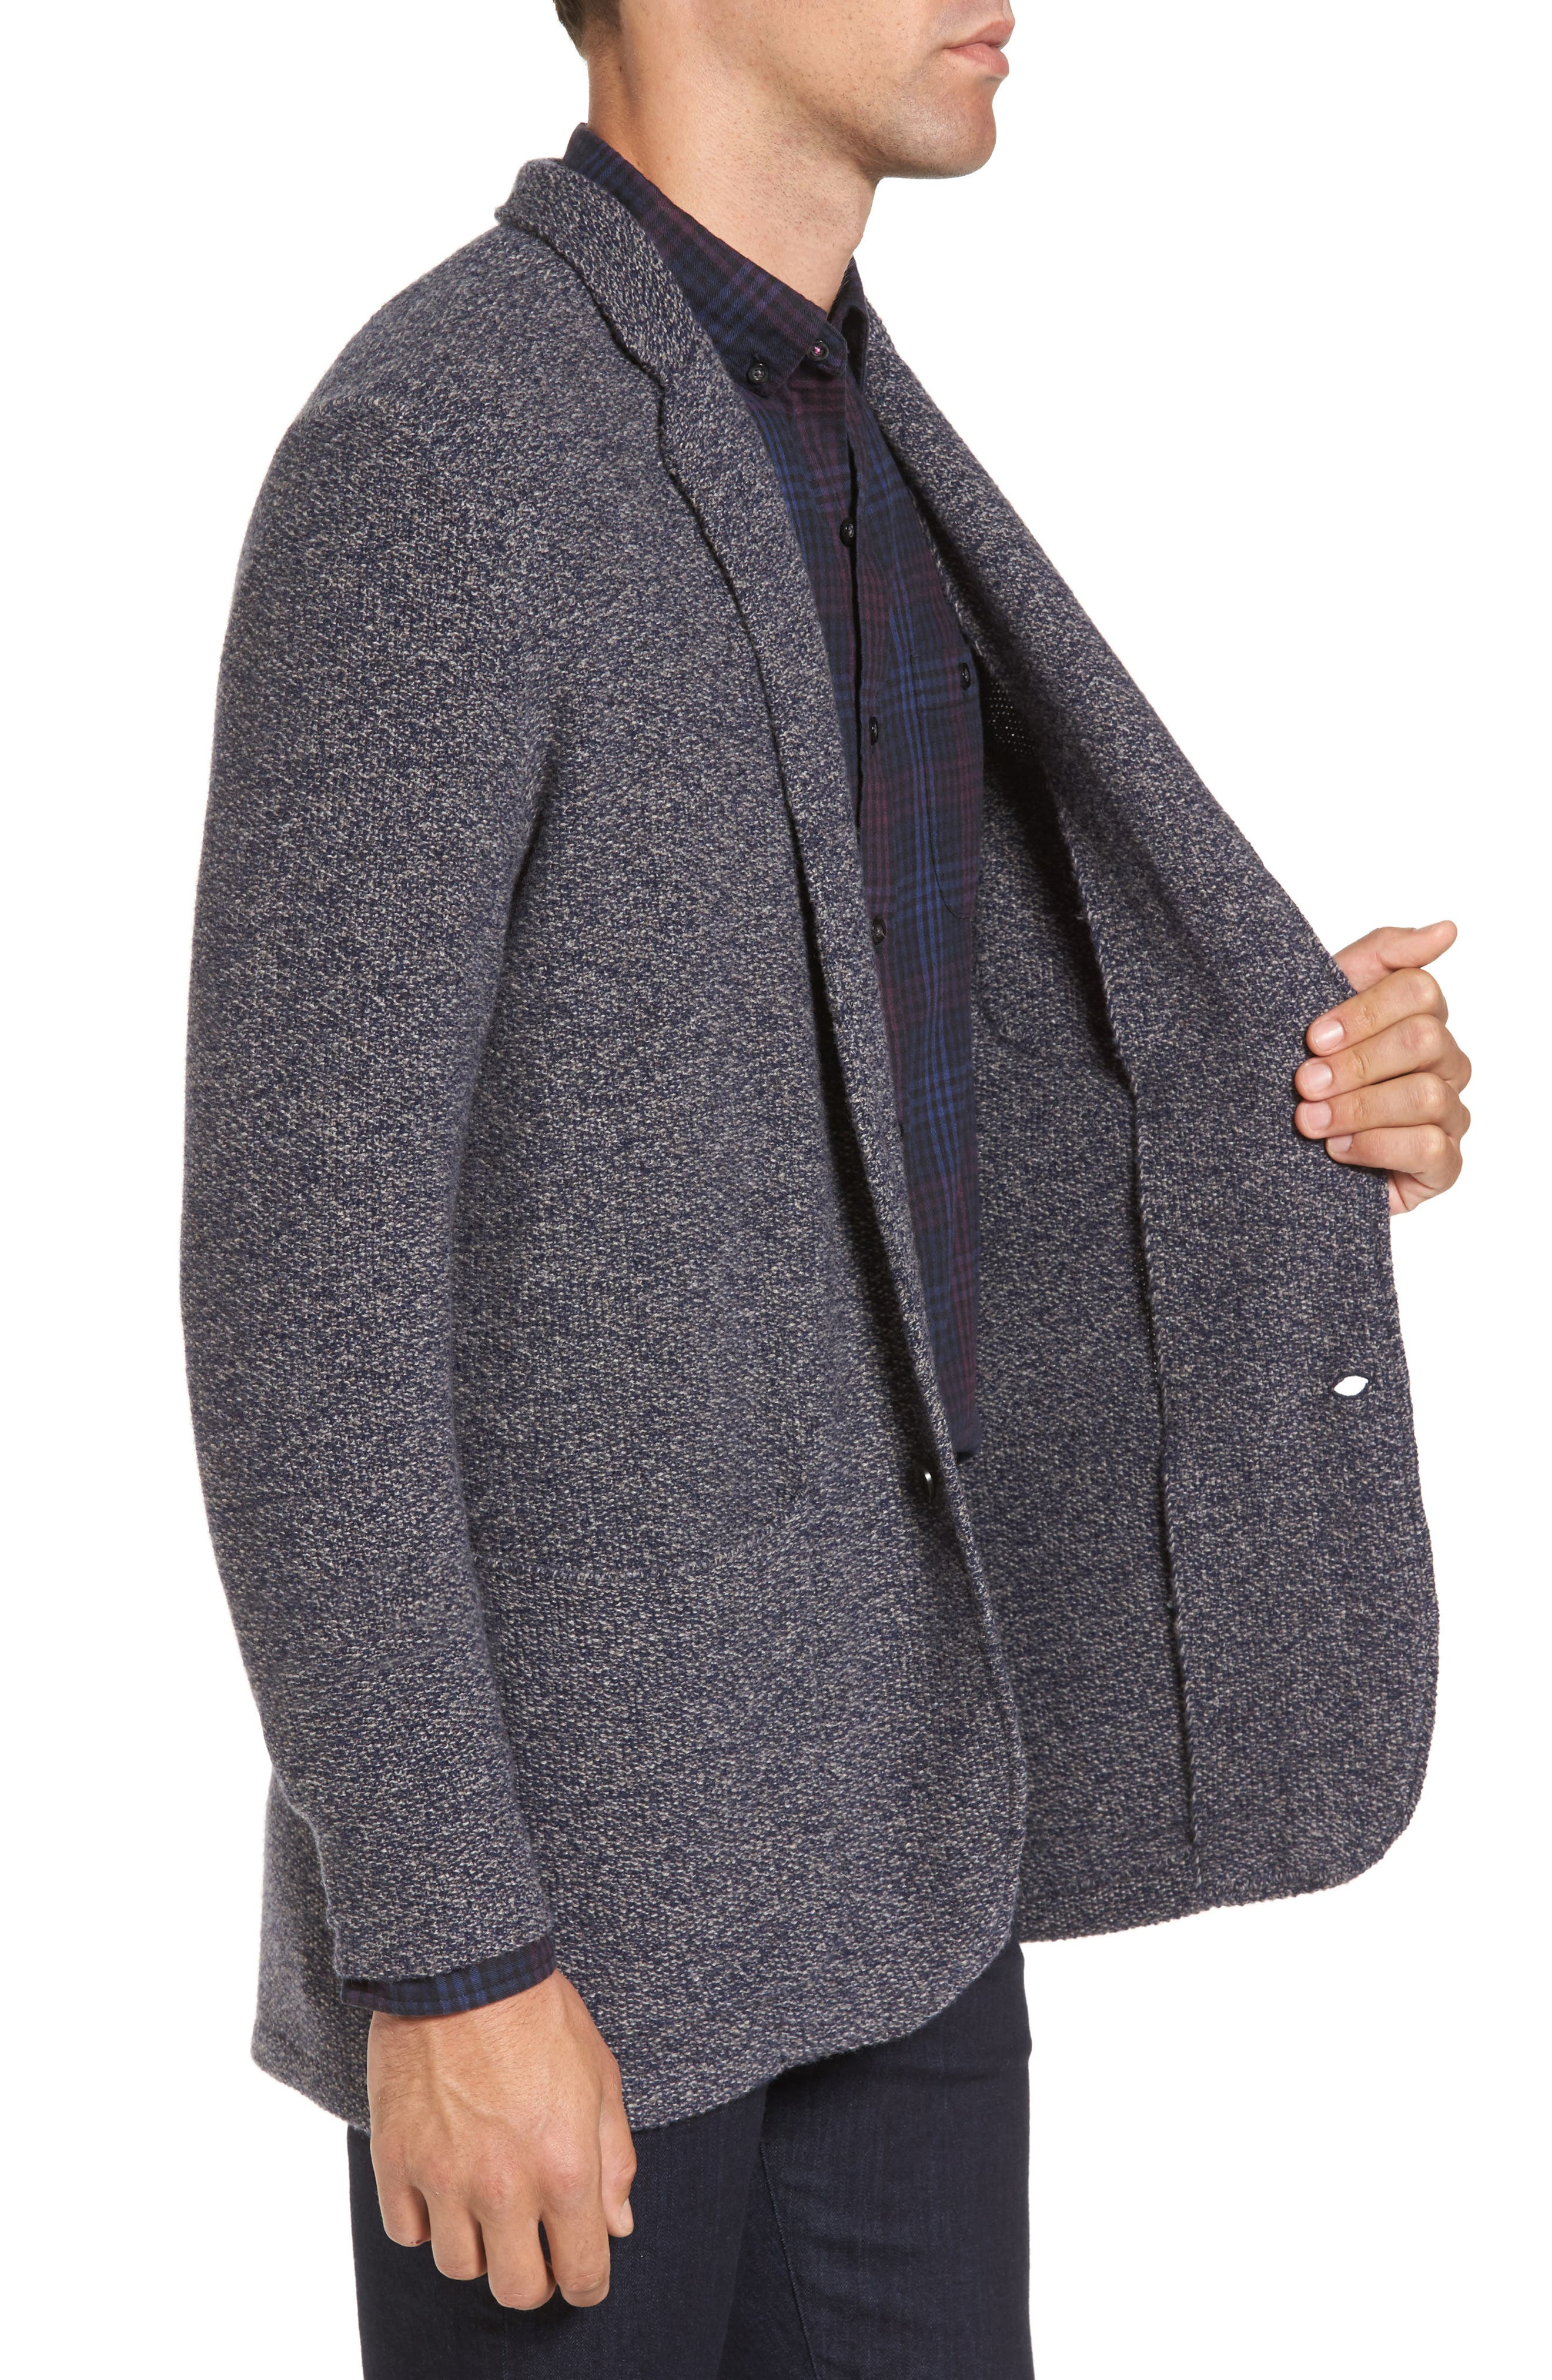 Deconstructed Merino & Yak Wool Sweater Jacket,                             Alternate thumbnail 3, color,